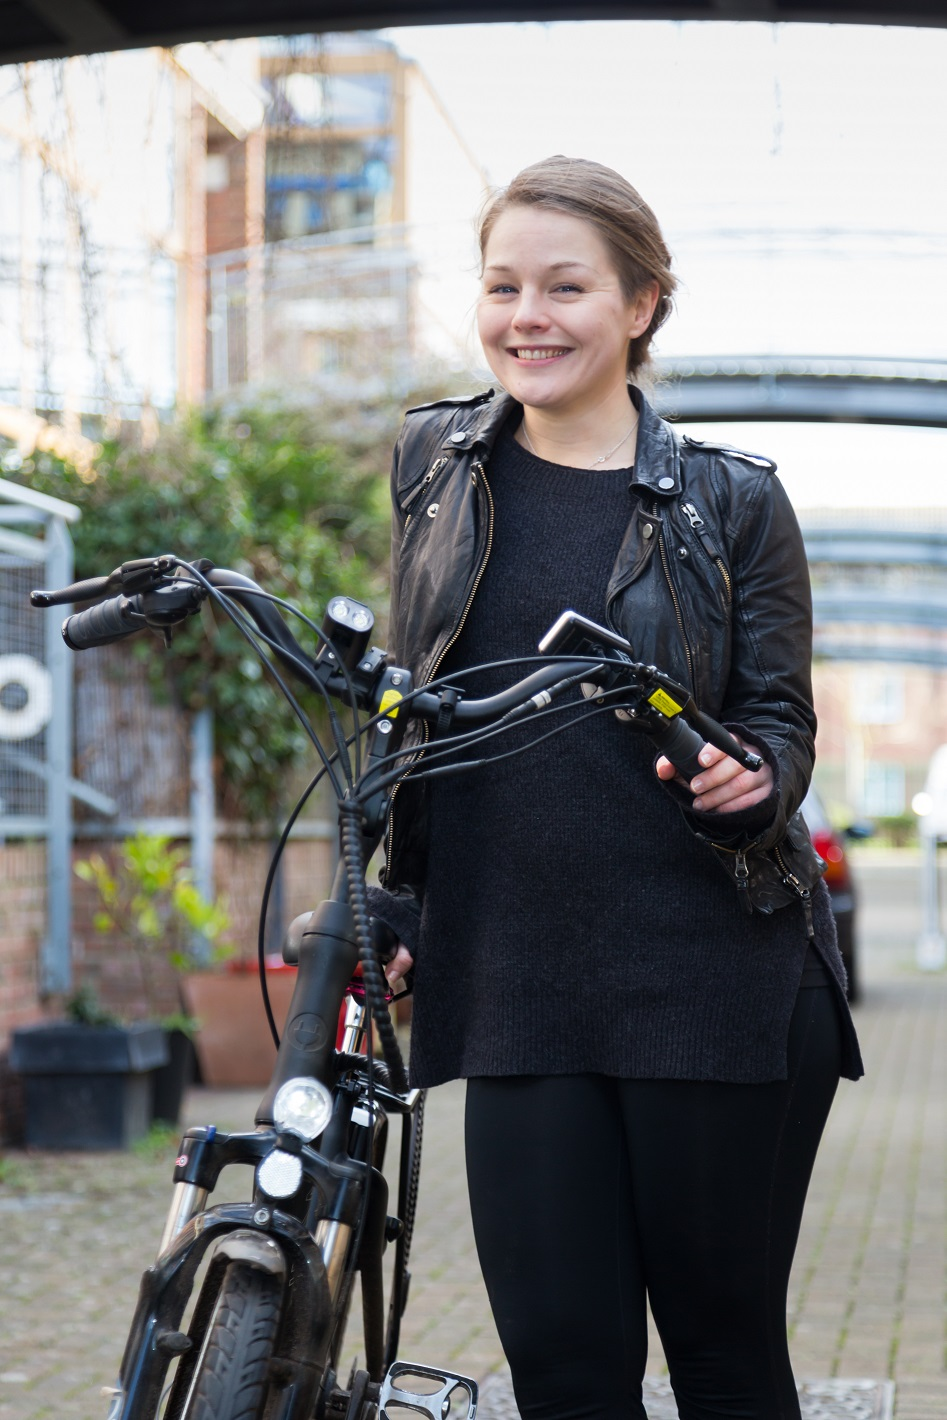 Marina, an e-bike rider in London, standing with her e-bike on a residential street with bridges connected the buildings overhead